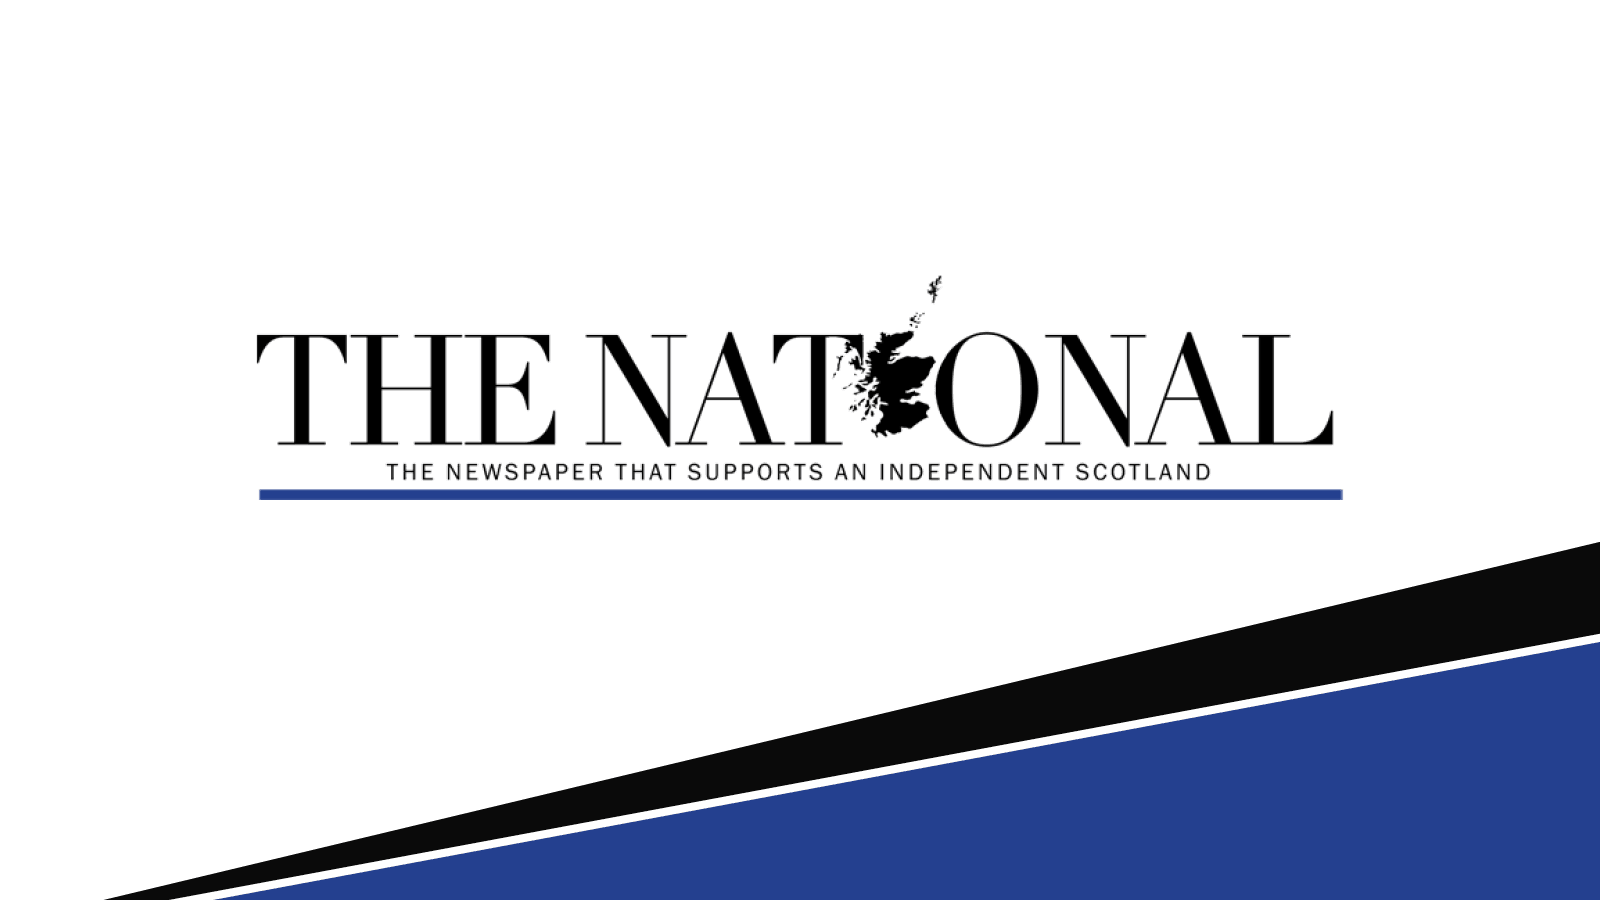 The National Press logo